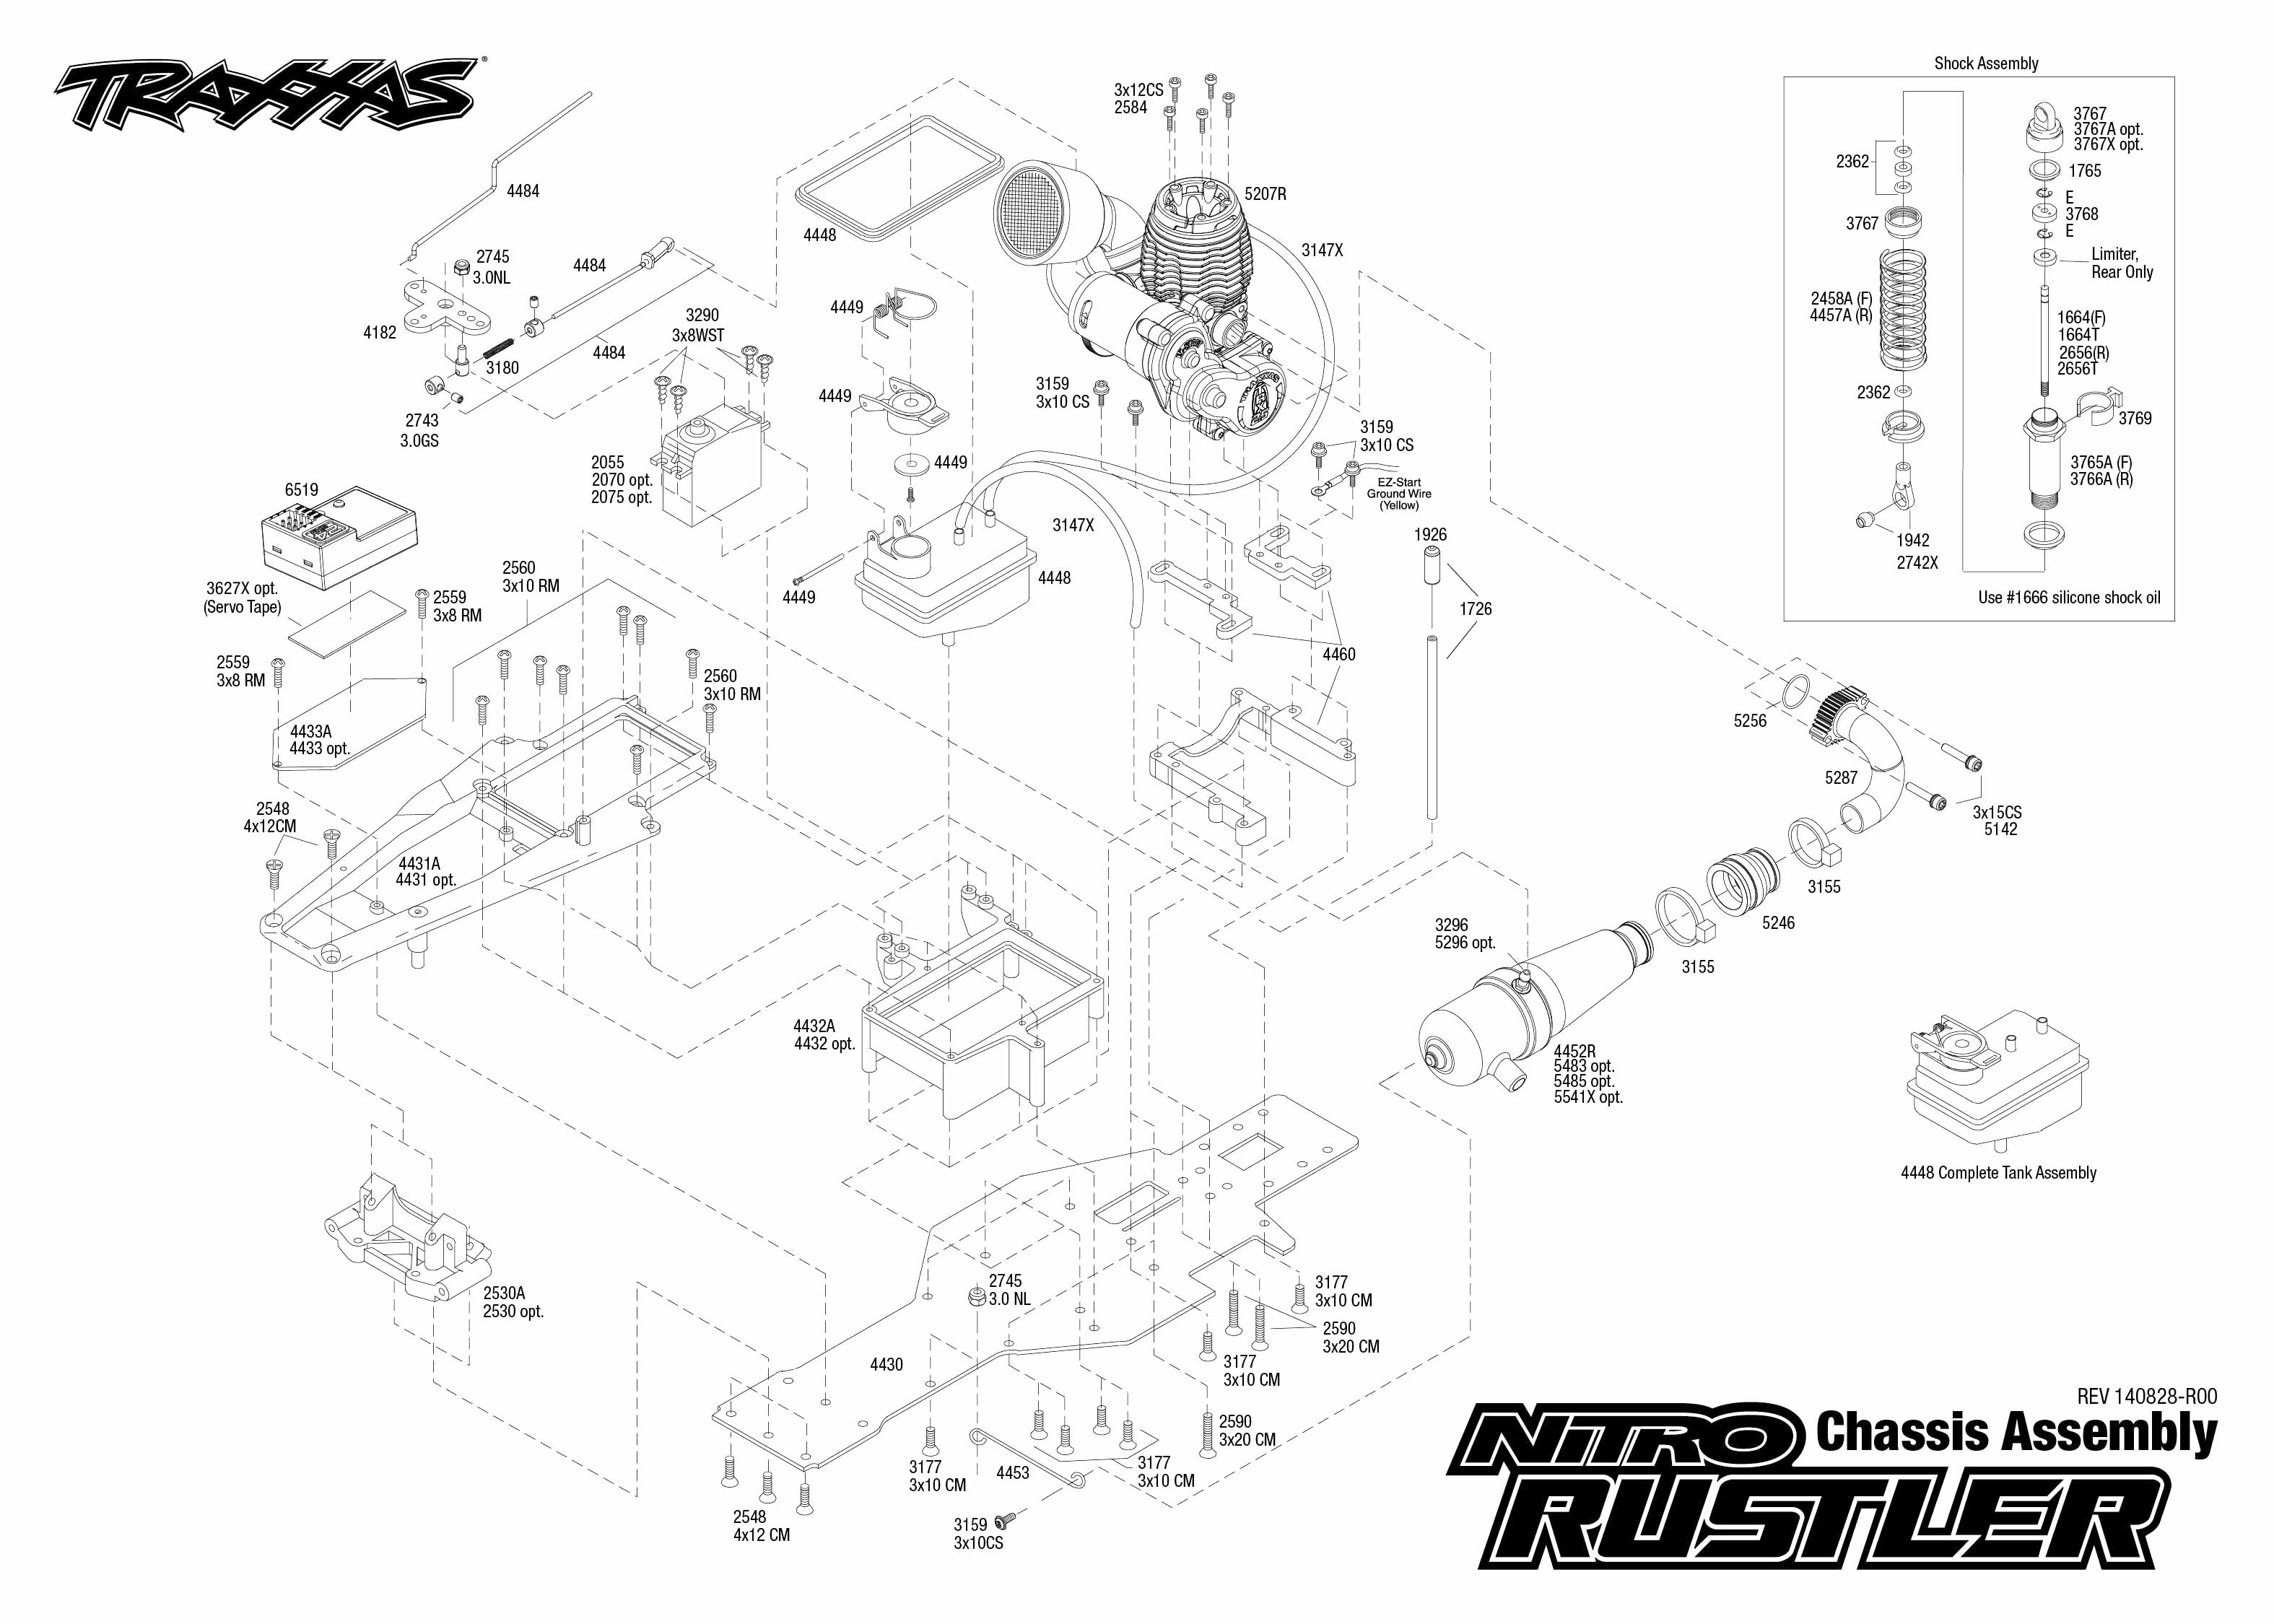 traxxas 2 5 engine diagram wiring block diagram Gas Turbine Diagram jato 3 3 diagram schematic diagram trx 2 5 exploded view traxxas 2 5 engine diagram